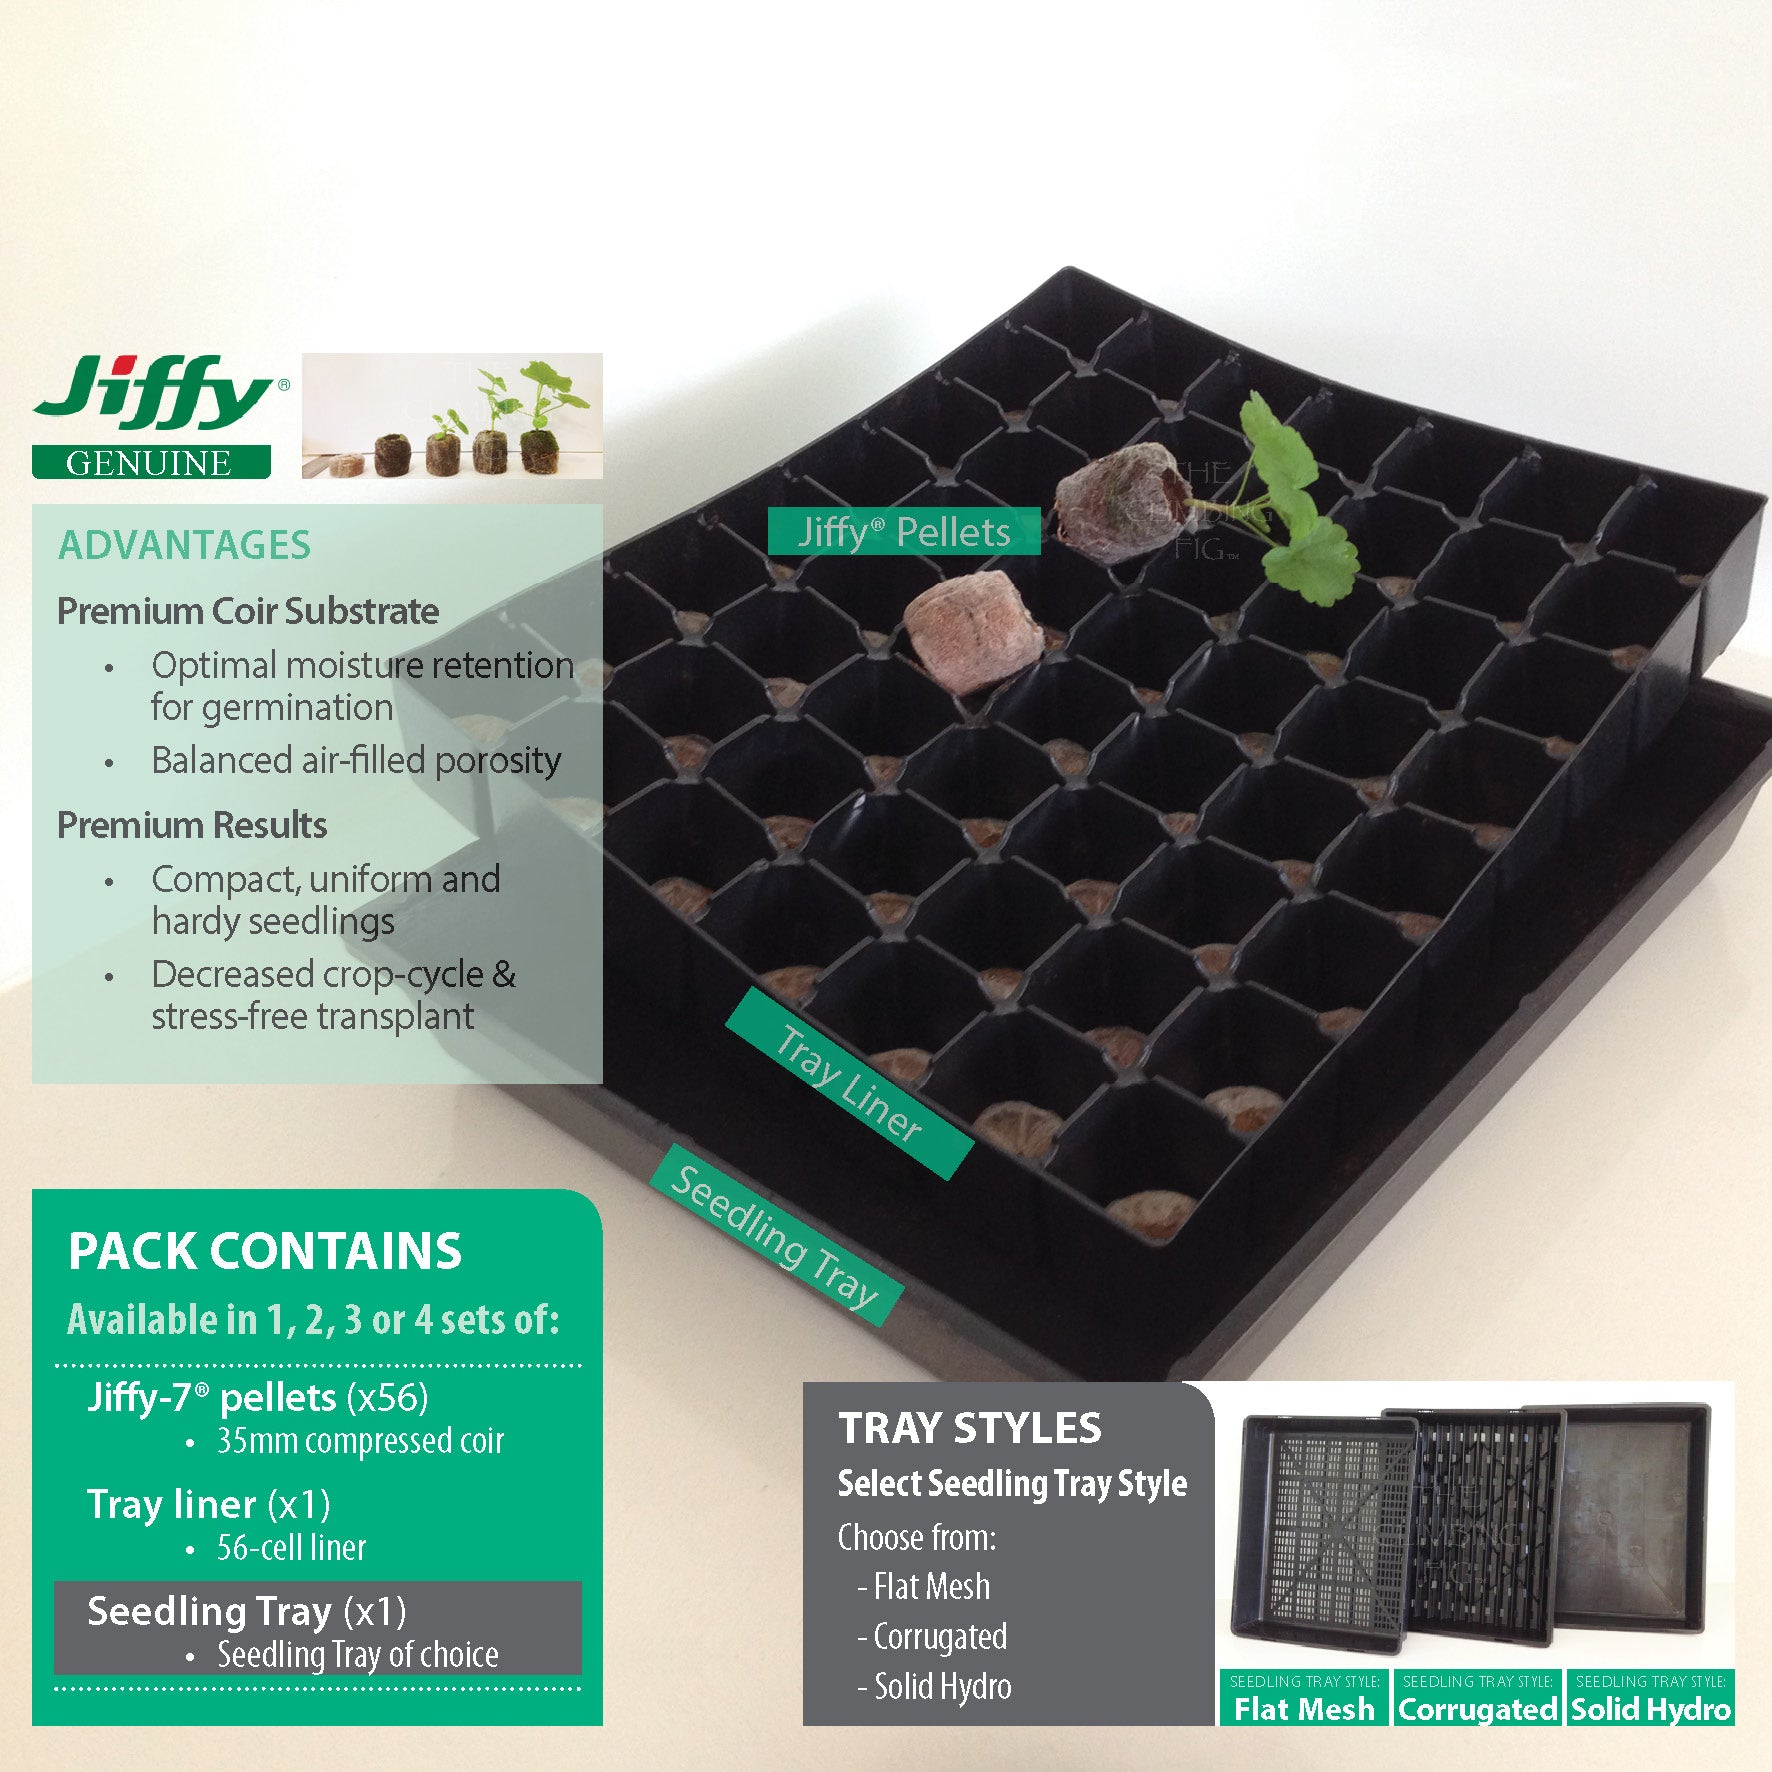 35mm Coir Jiffy-7 Tray Packs With Pellets & Inserts for seedling propagation